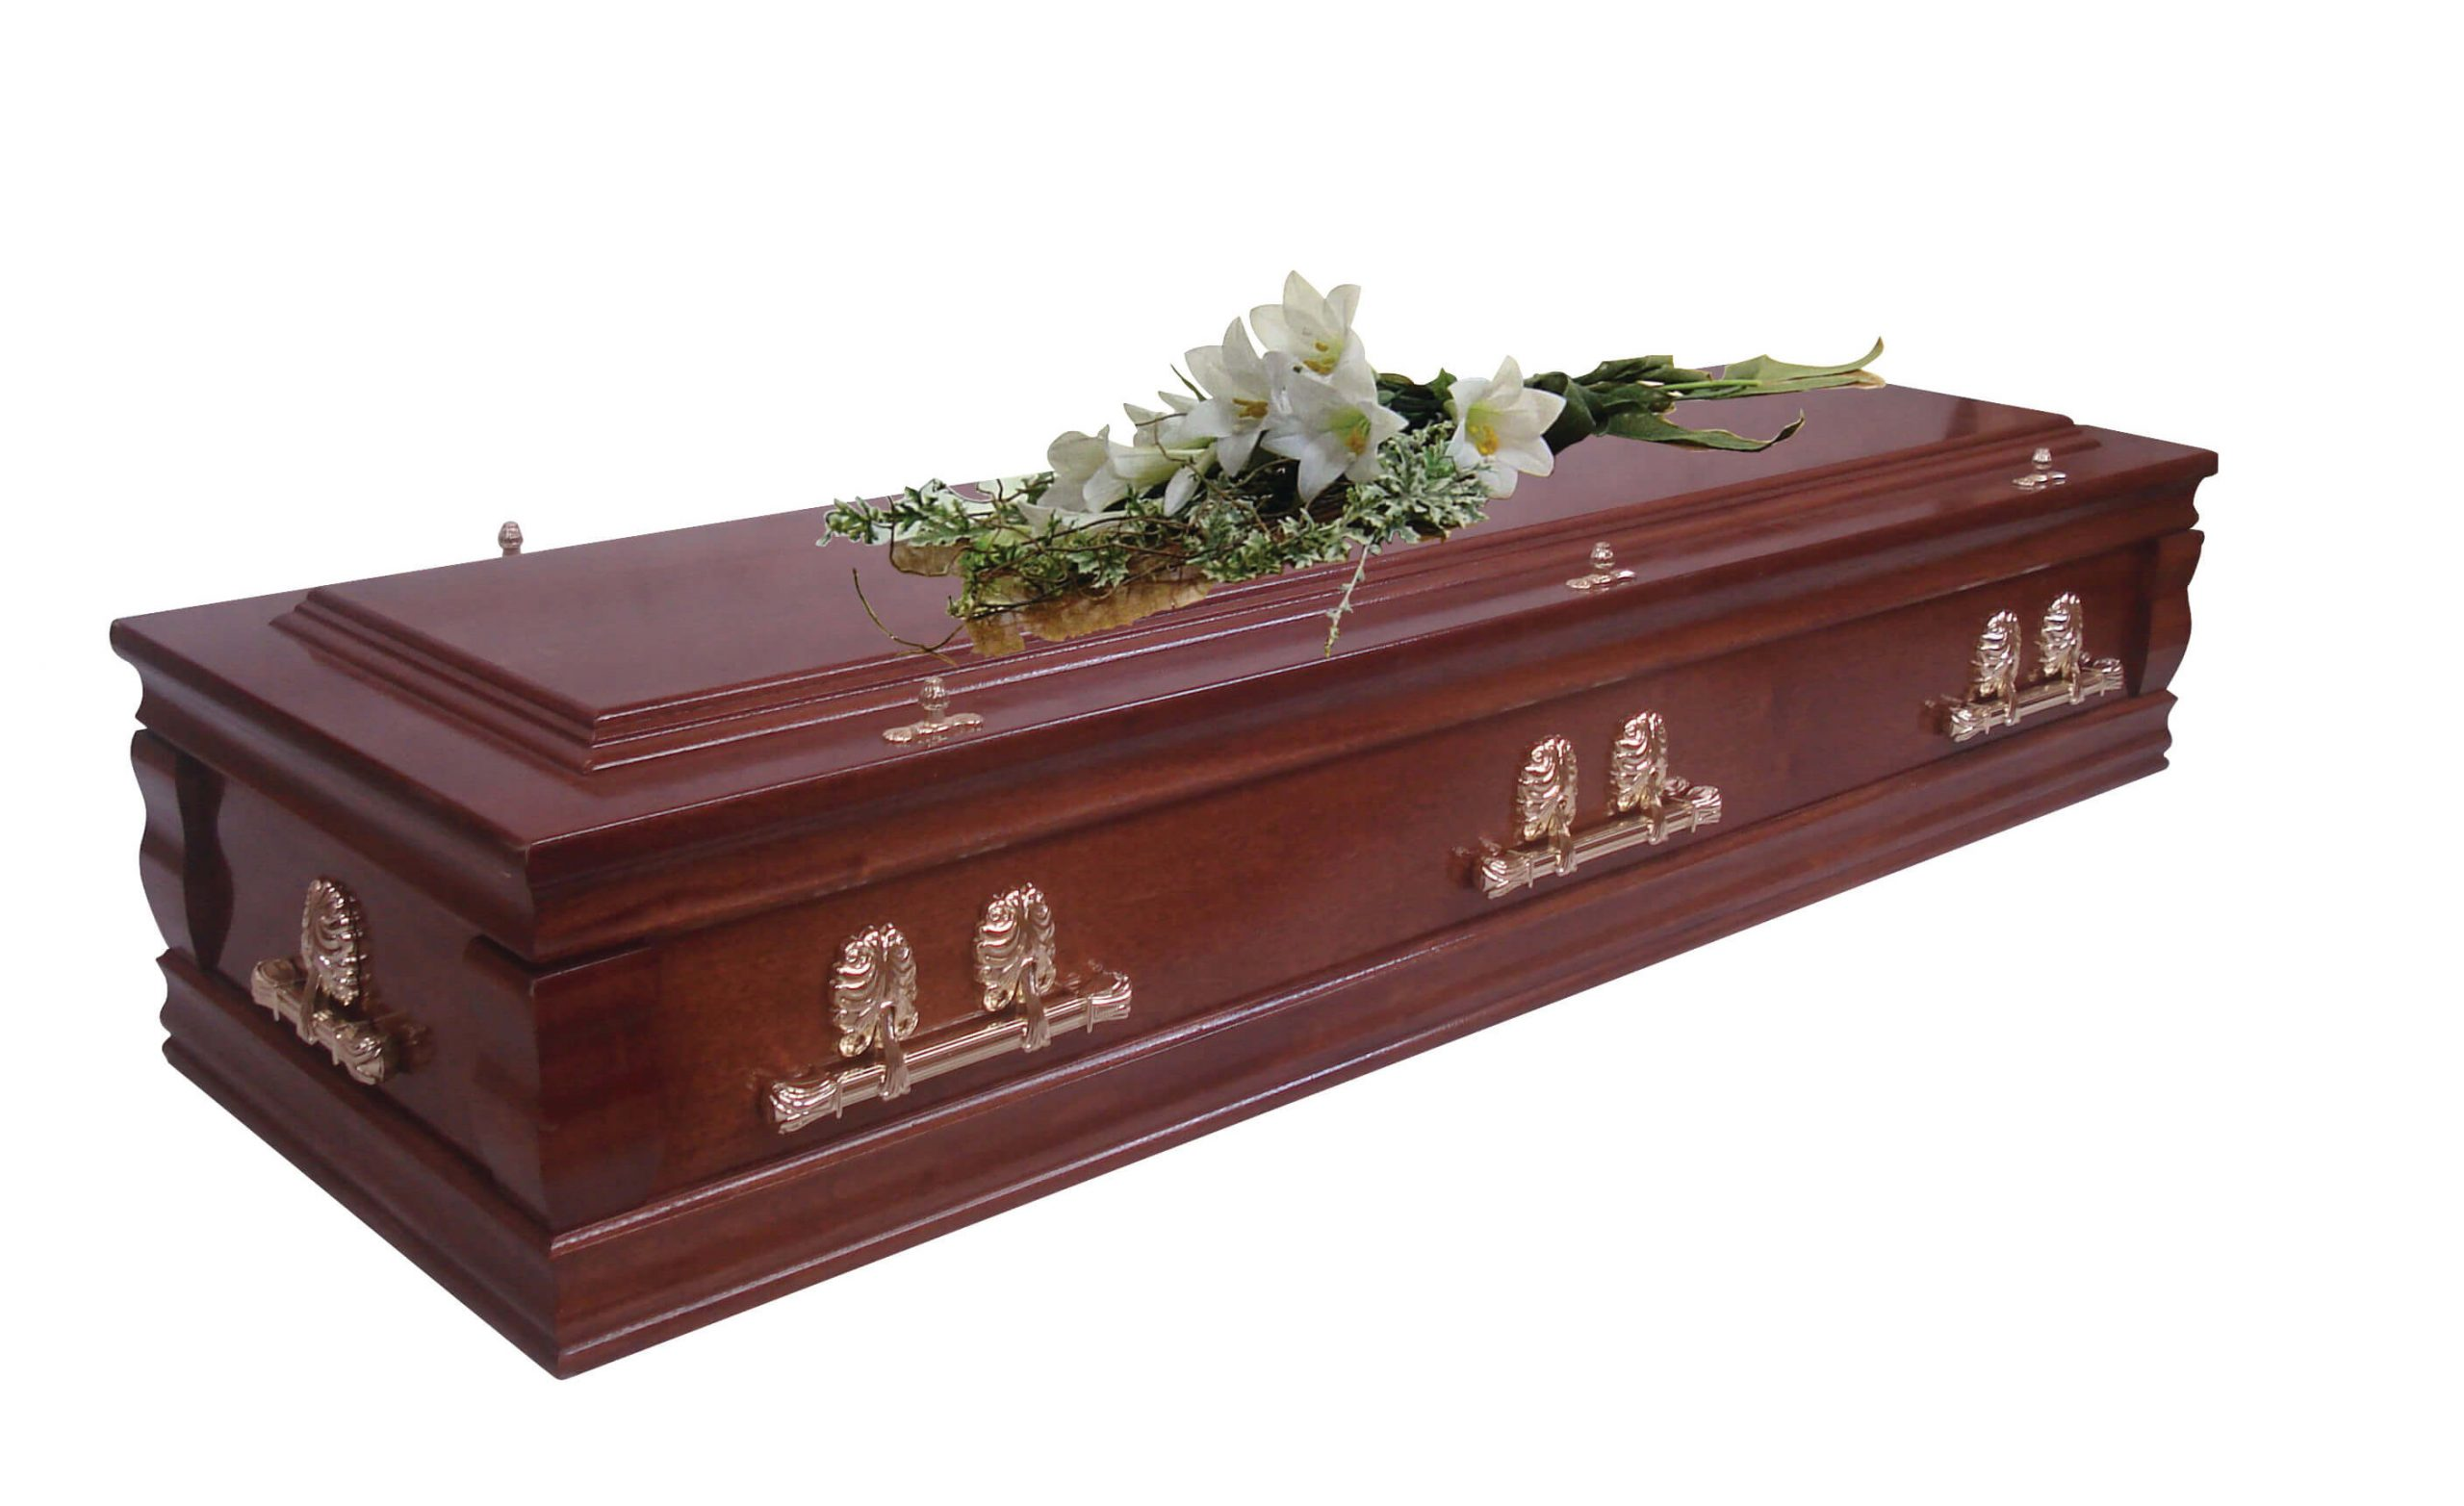 Veneered mahogany casket with deep solid wood moulds, carved ornate corner pillars and raised lid. Also available in solid mahogany.